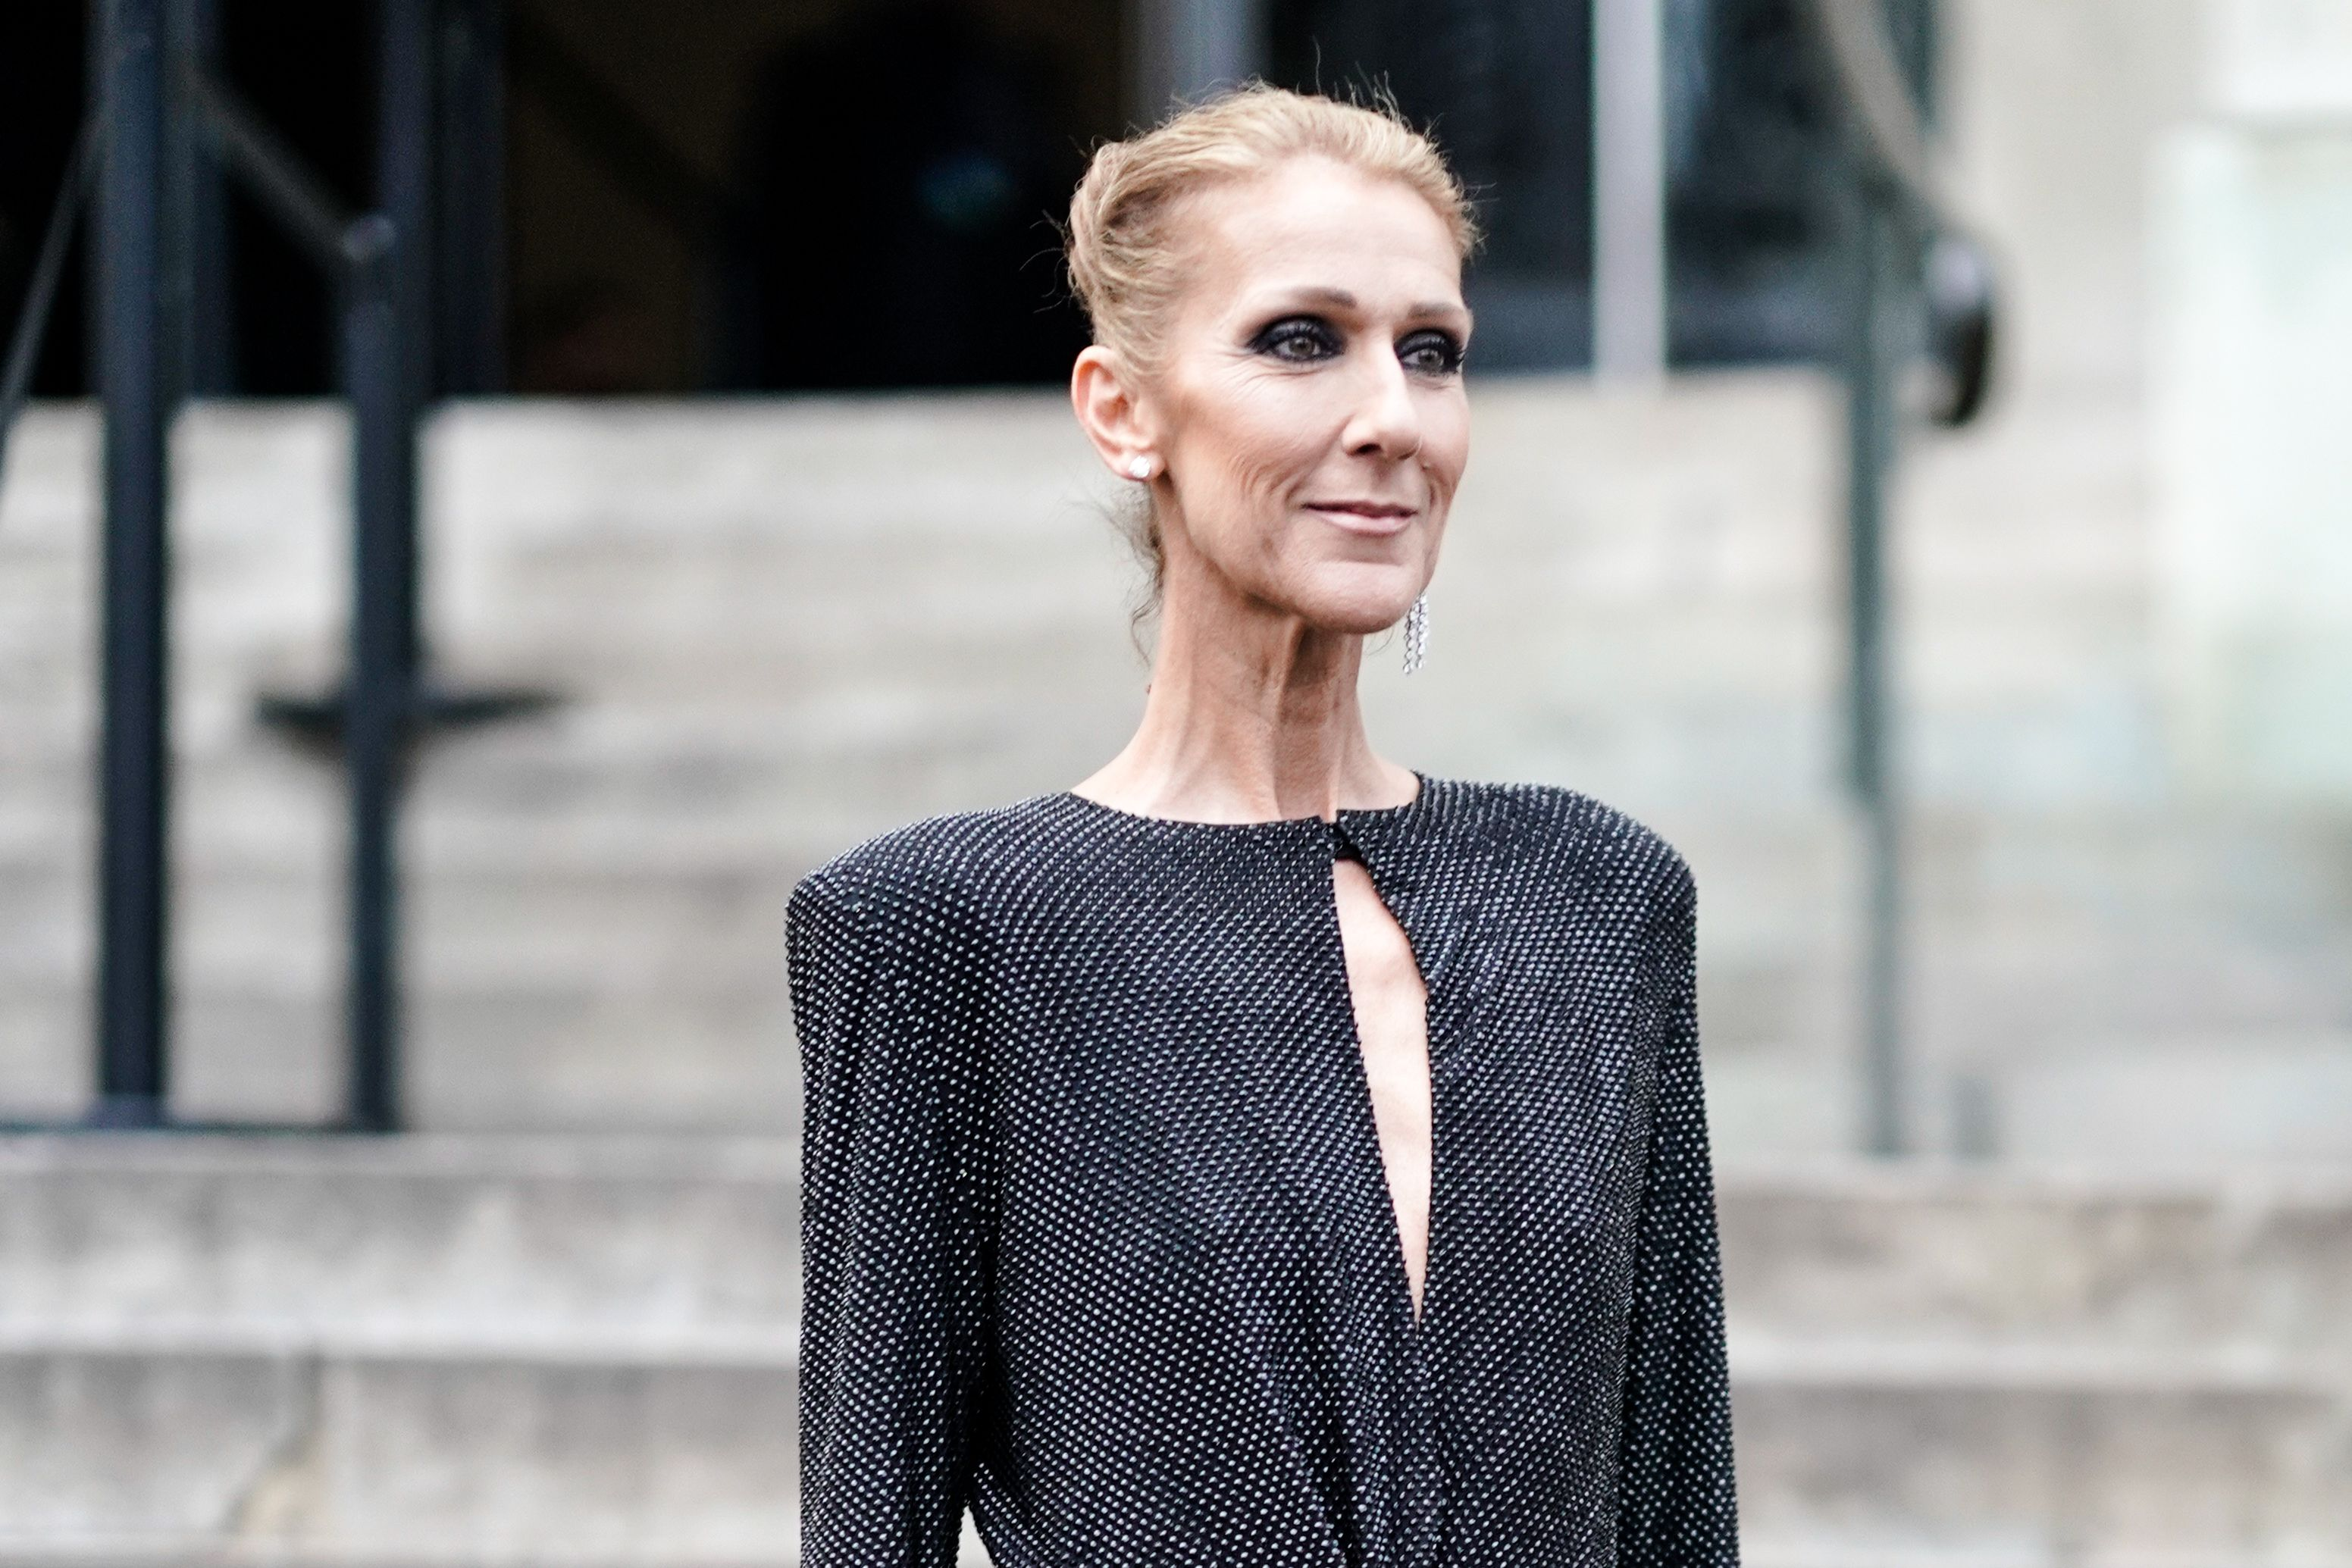 Celine Dion Is Getting Her Own Biopic - 'The Power of Love' Celine Dion  Biopic Details